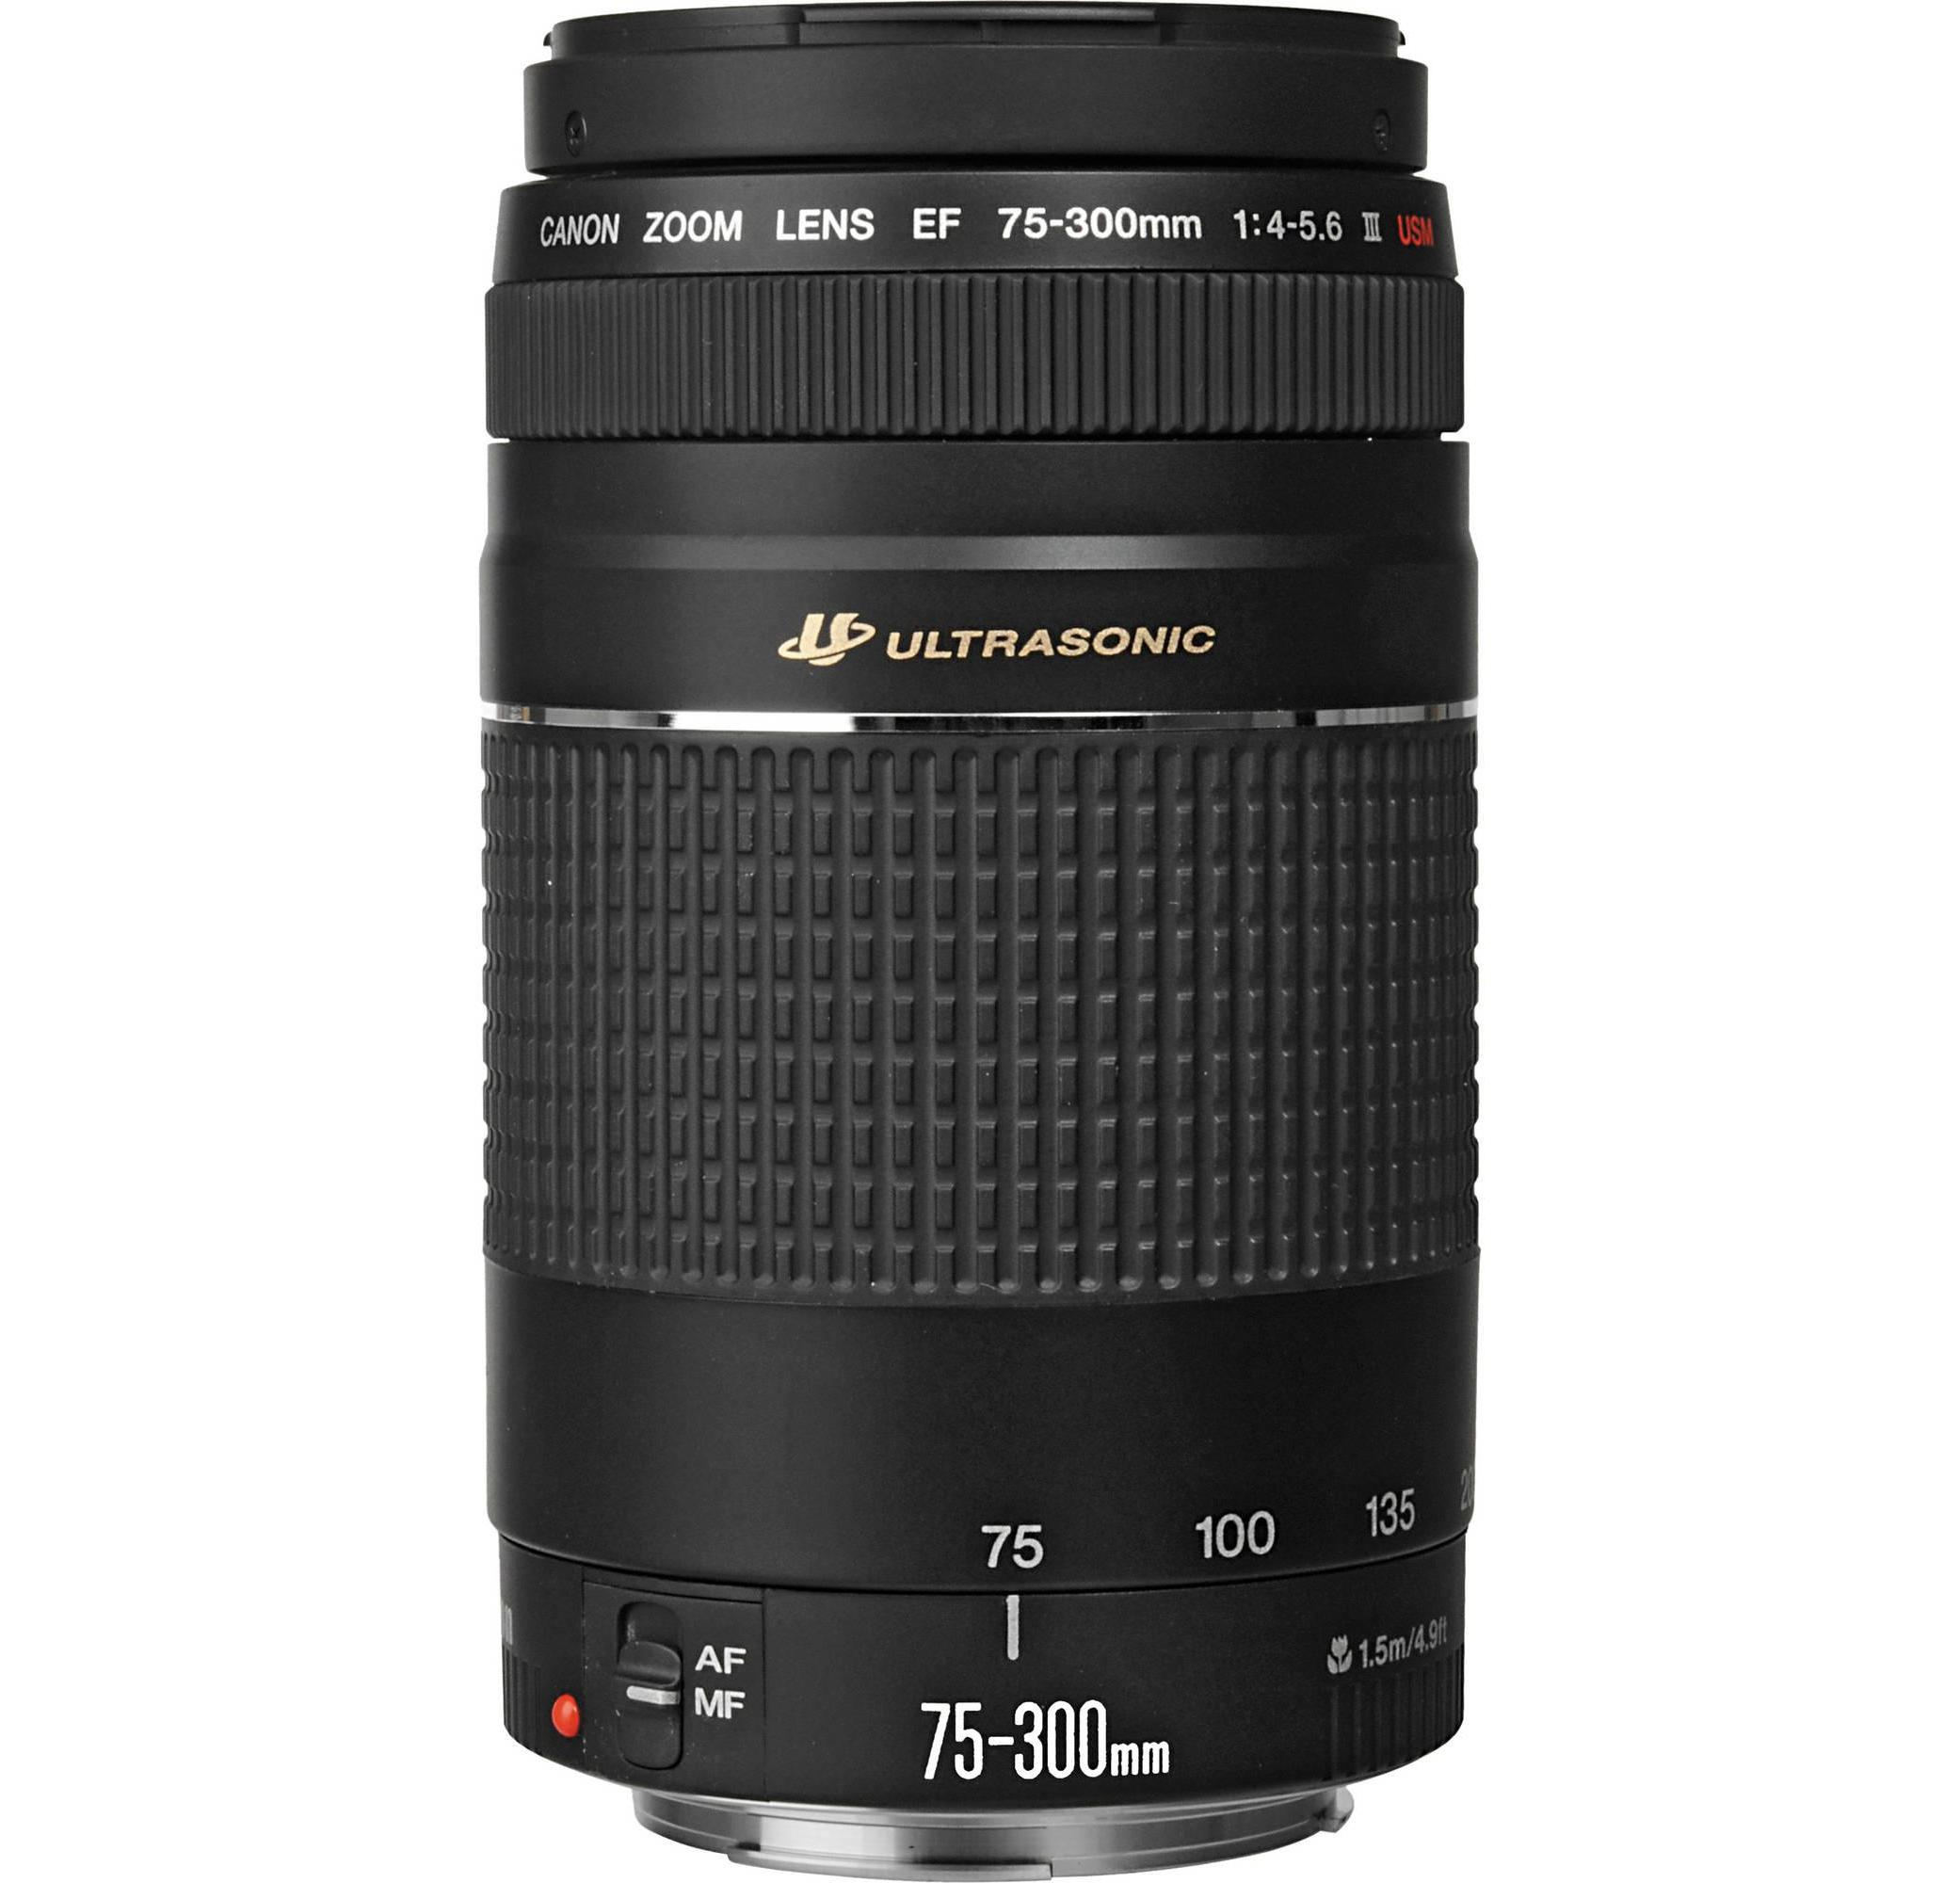 Buy Tamron Af 18 200mm F 35 63 Xr Di Ii Vc Macro For Canon In Nikon Sp 35mm Usd Lens Free Shipping You Save 44